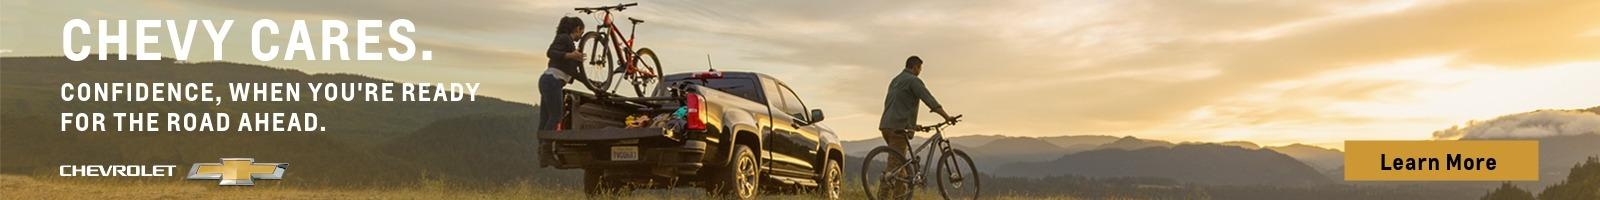 Chevy Cares. Confidence, When You're Ready For The Road Ahead.